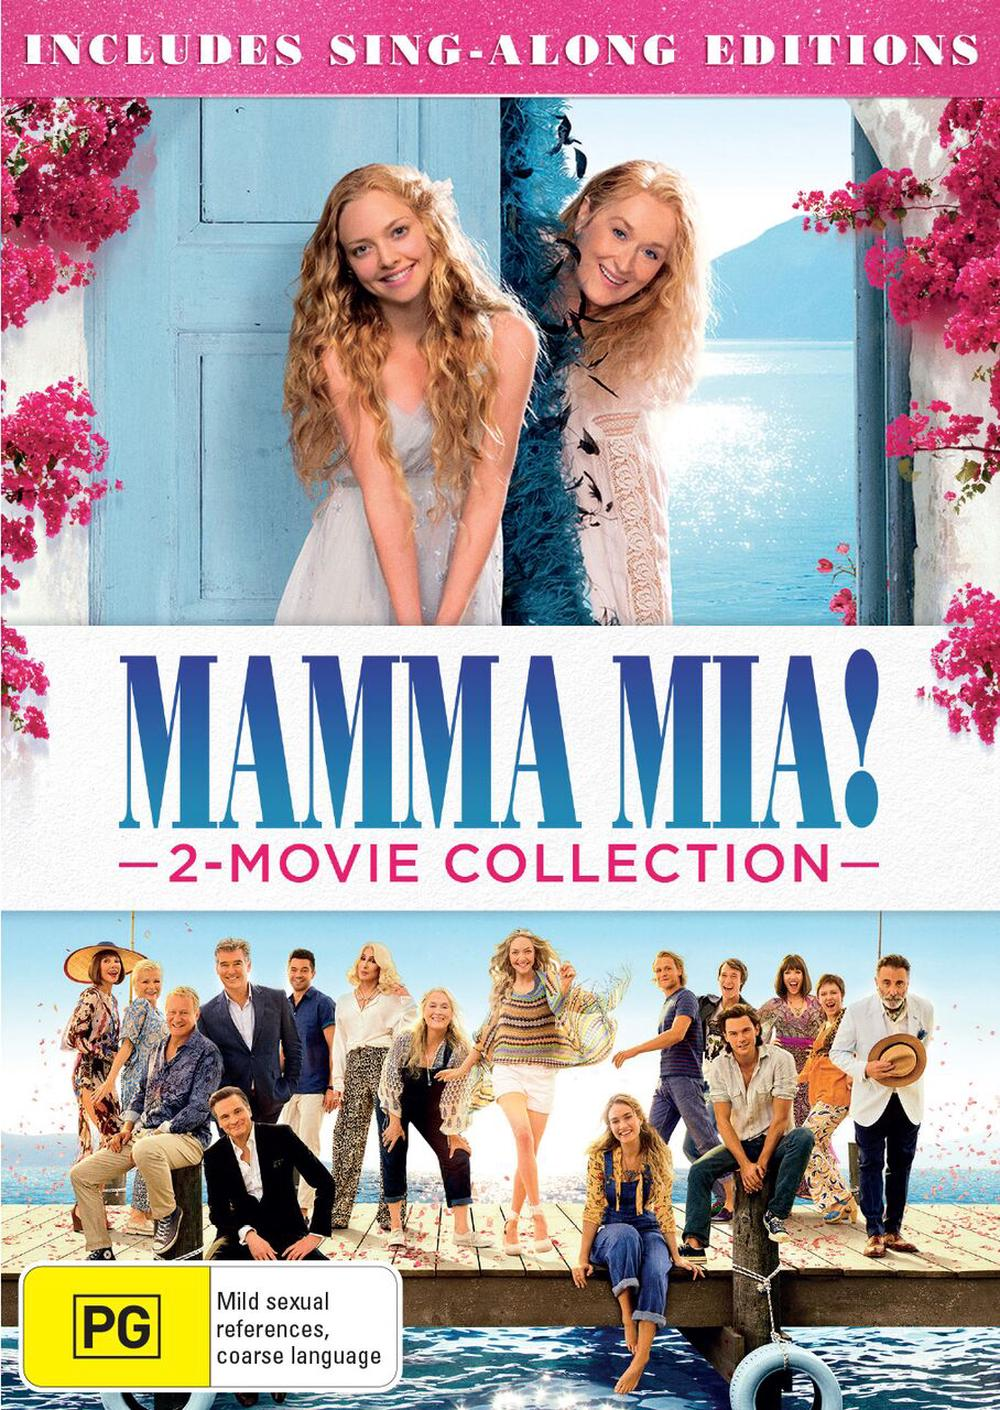 Mamma Mia & Mamma Mia: Here We Go Again- 2 Movie Collection